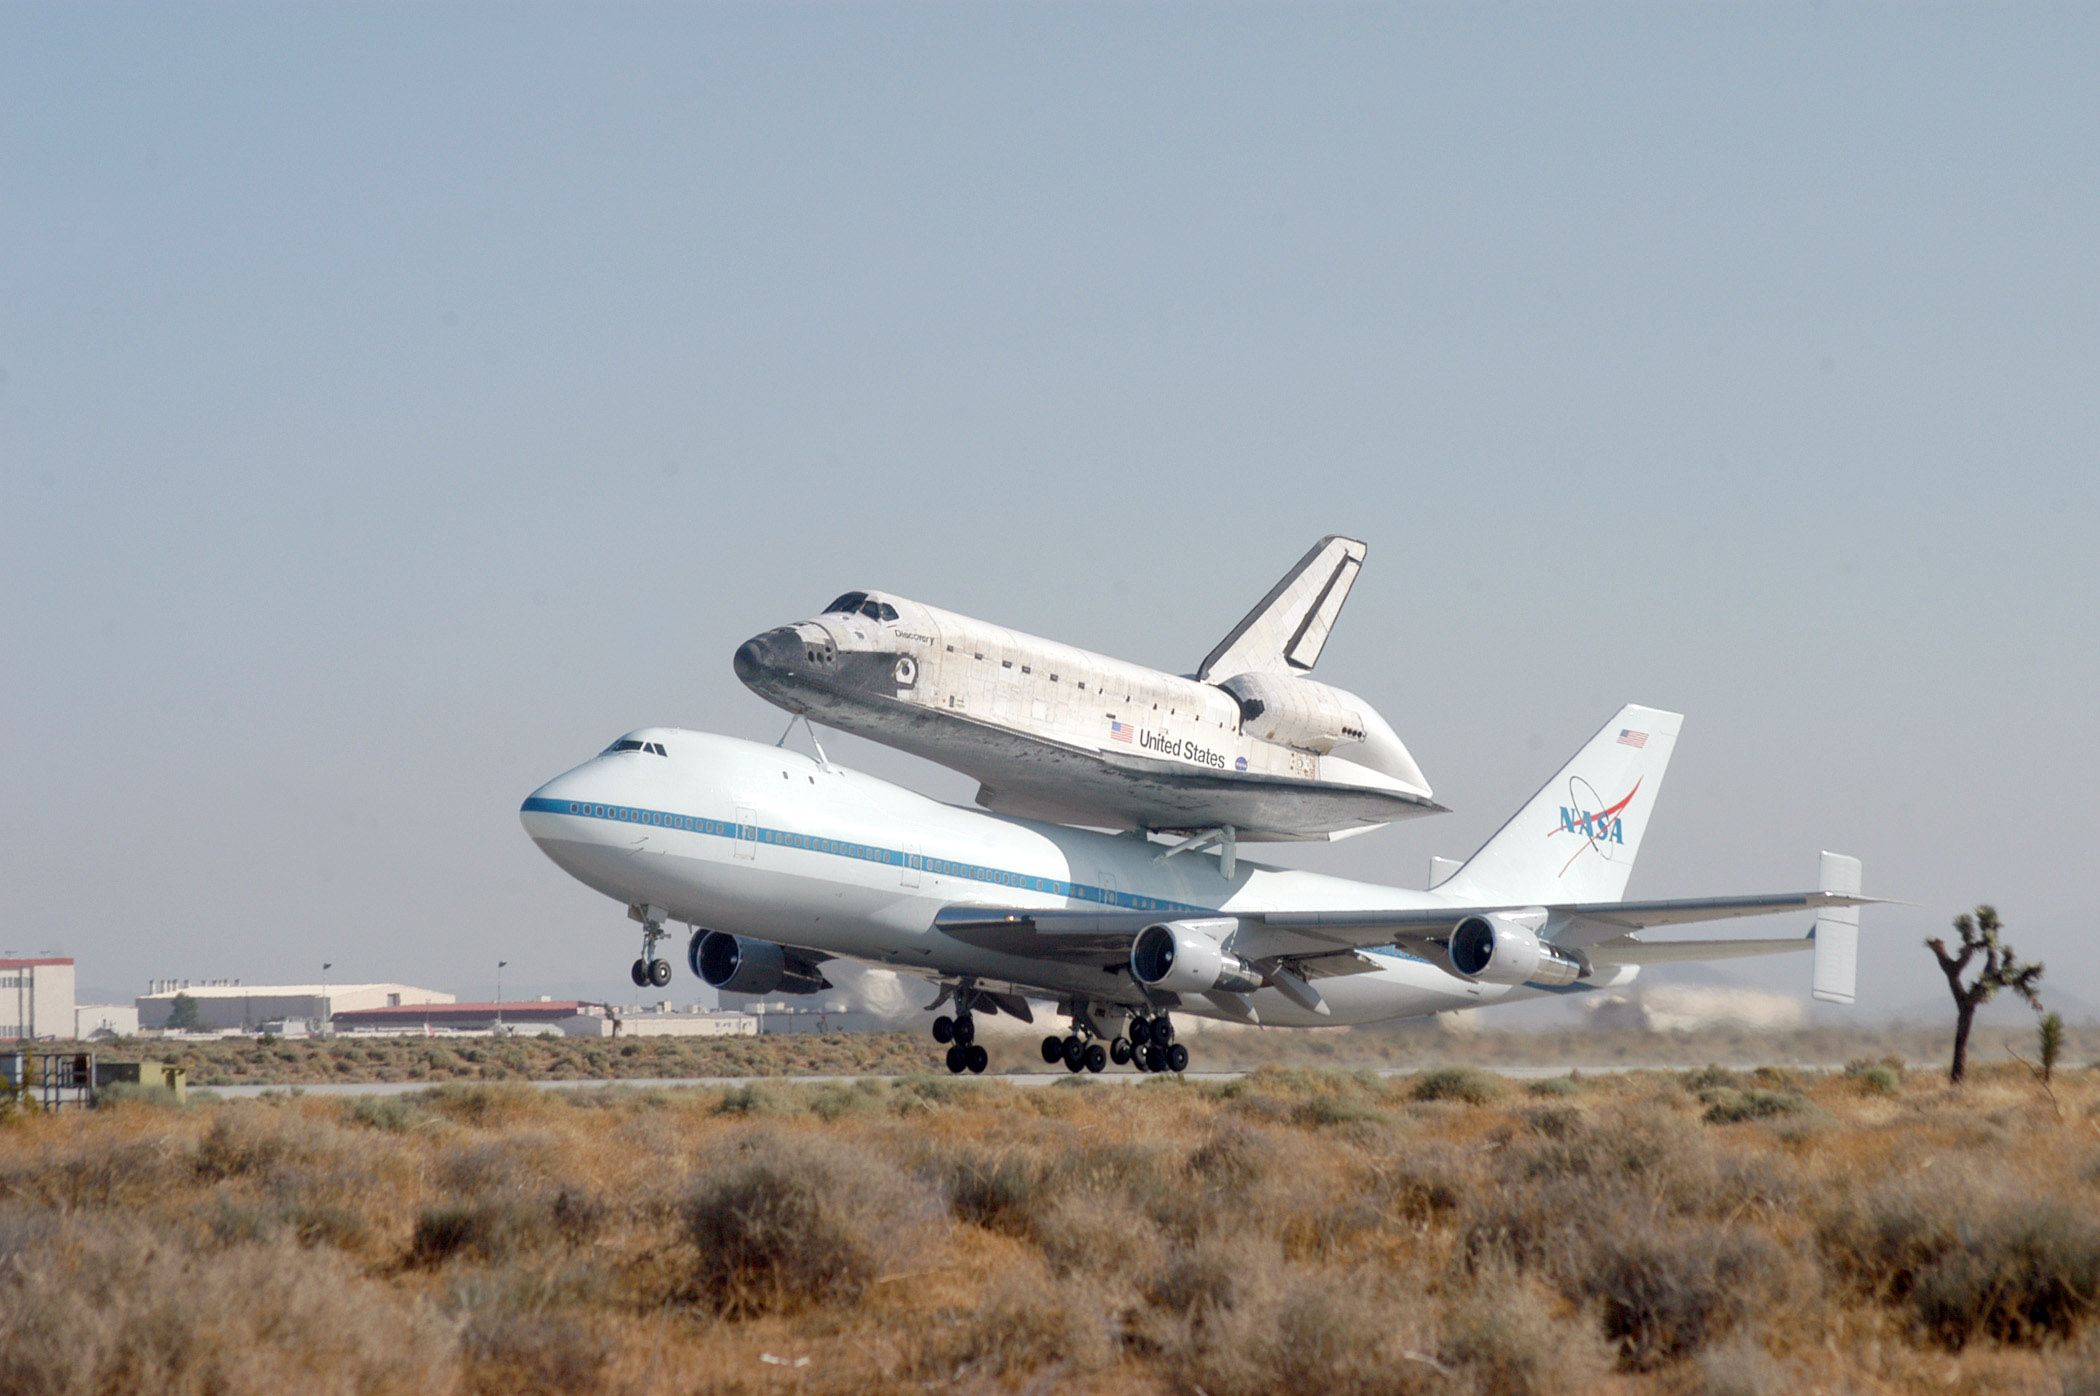 NASA 747 Shuttle Carrier Aircraft - Pics about space